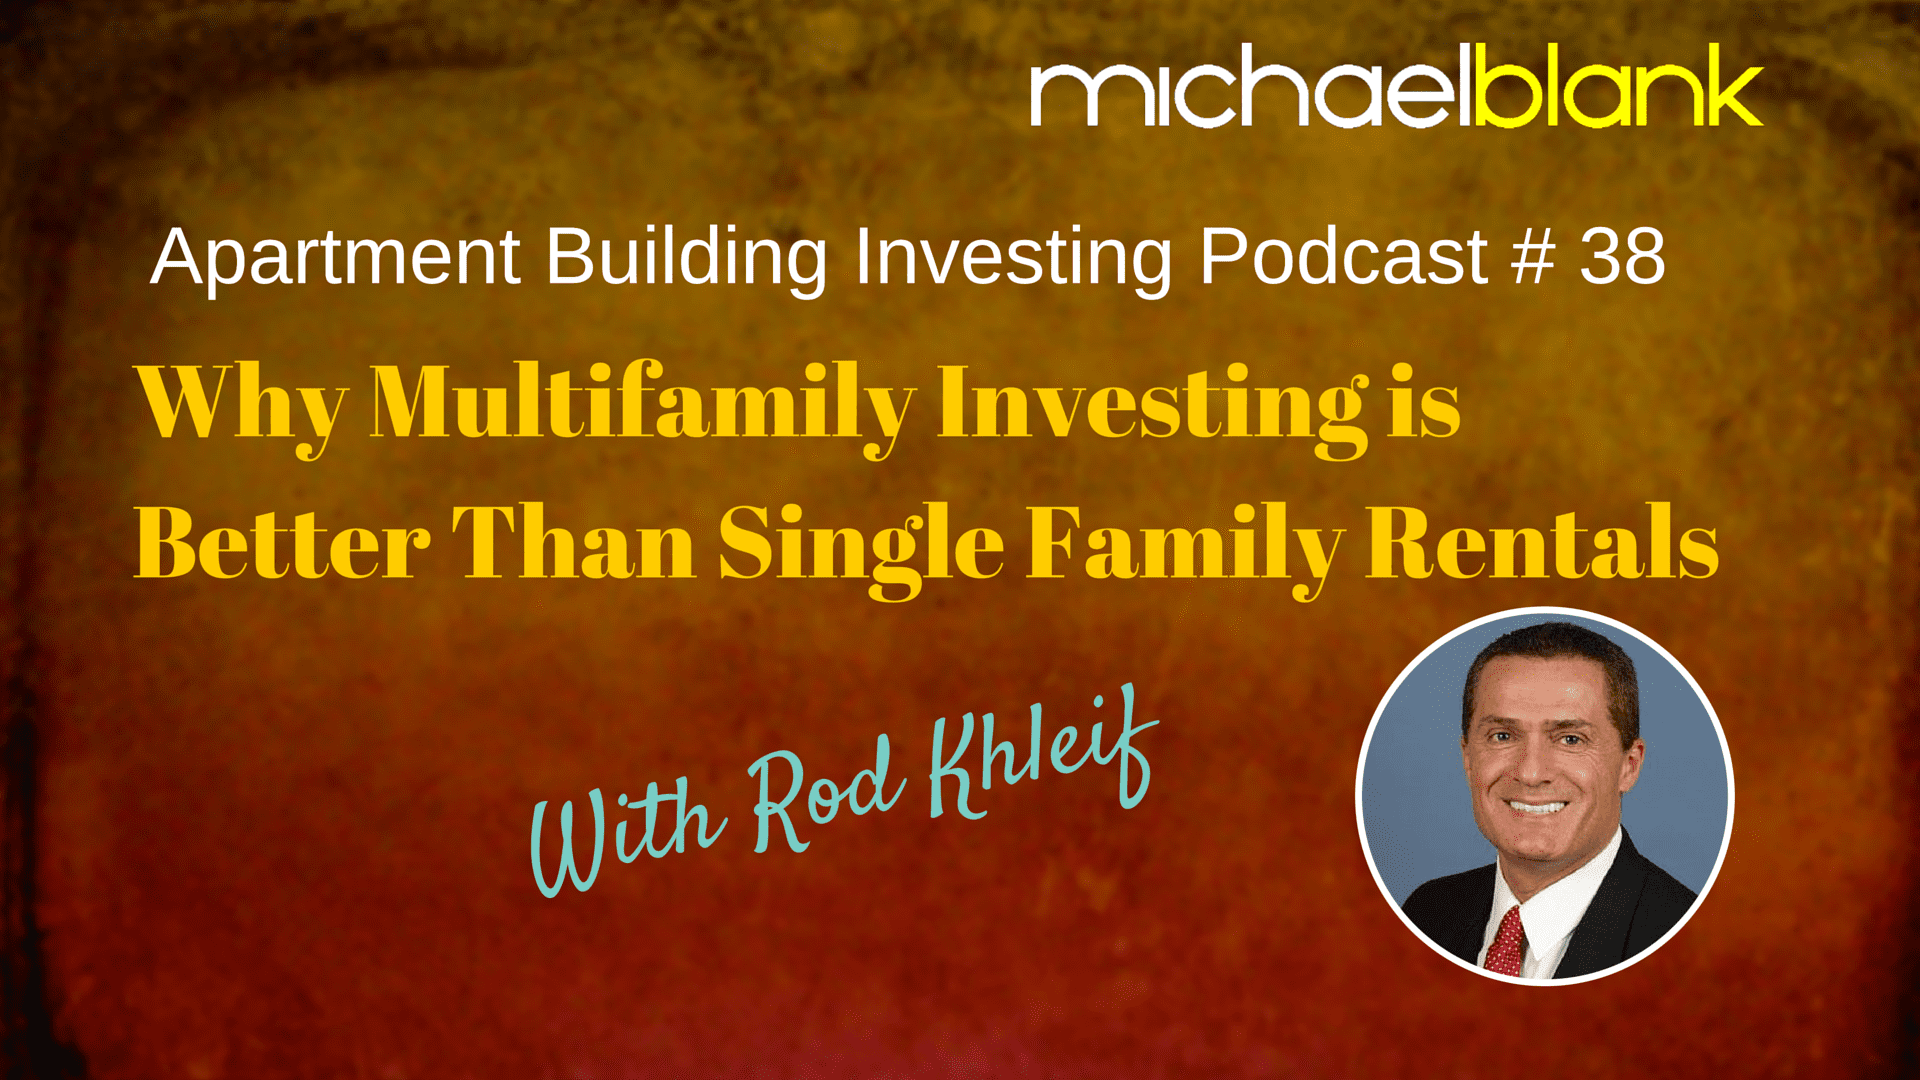 MB 038: Why Multifamily Investing is better than Single Family Rentals – With Rod Khleif